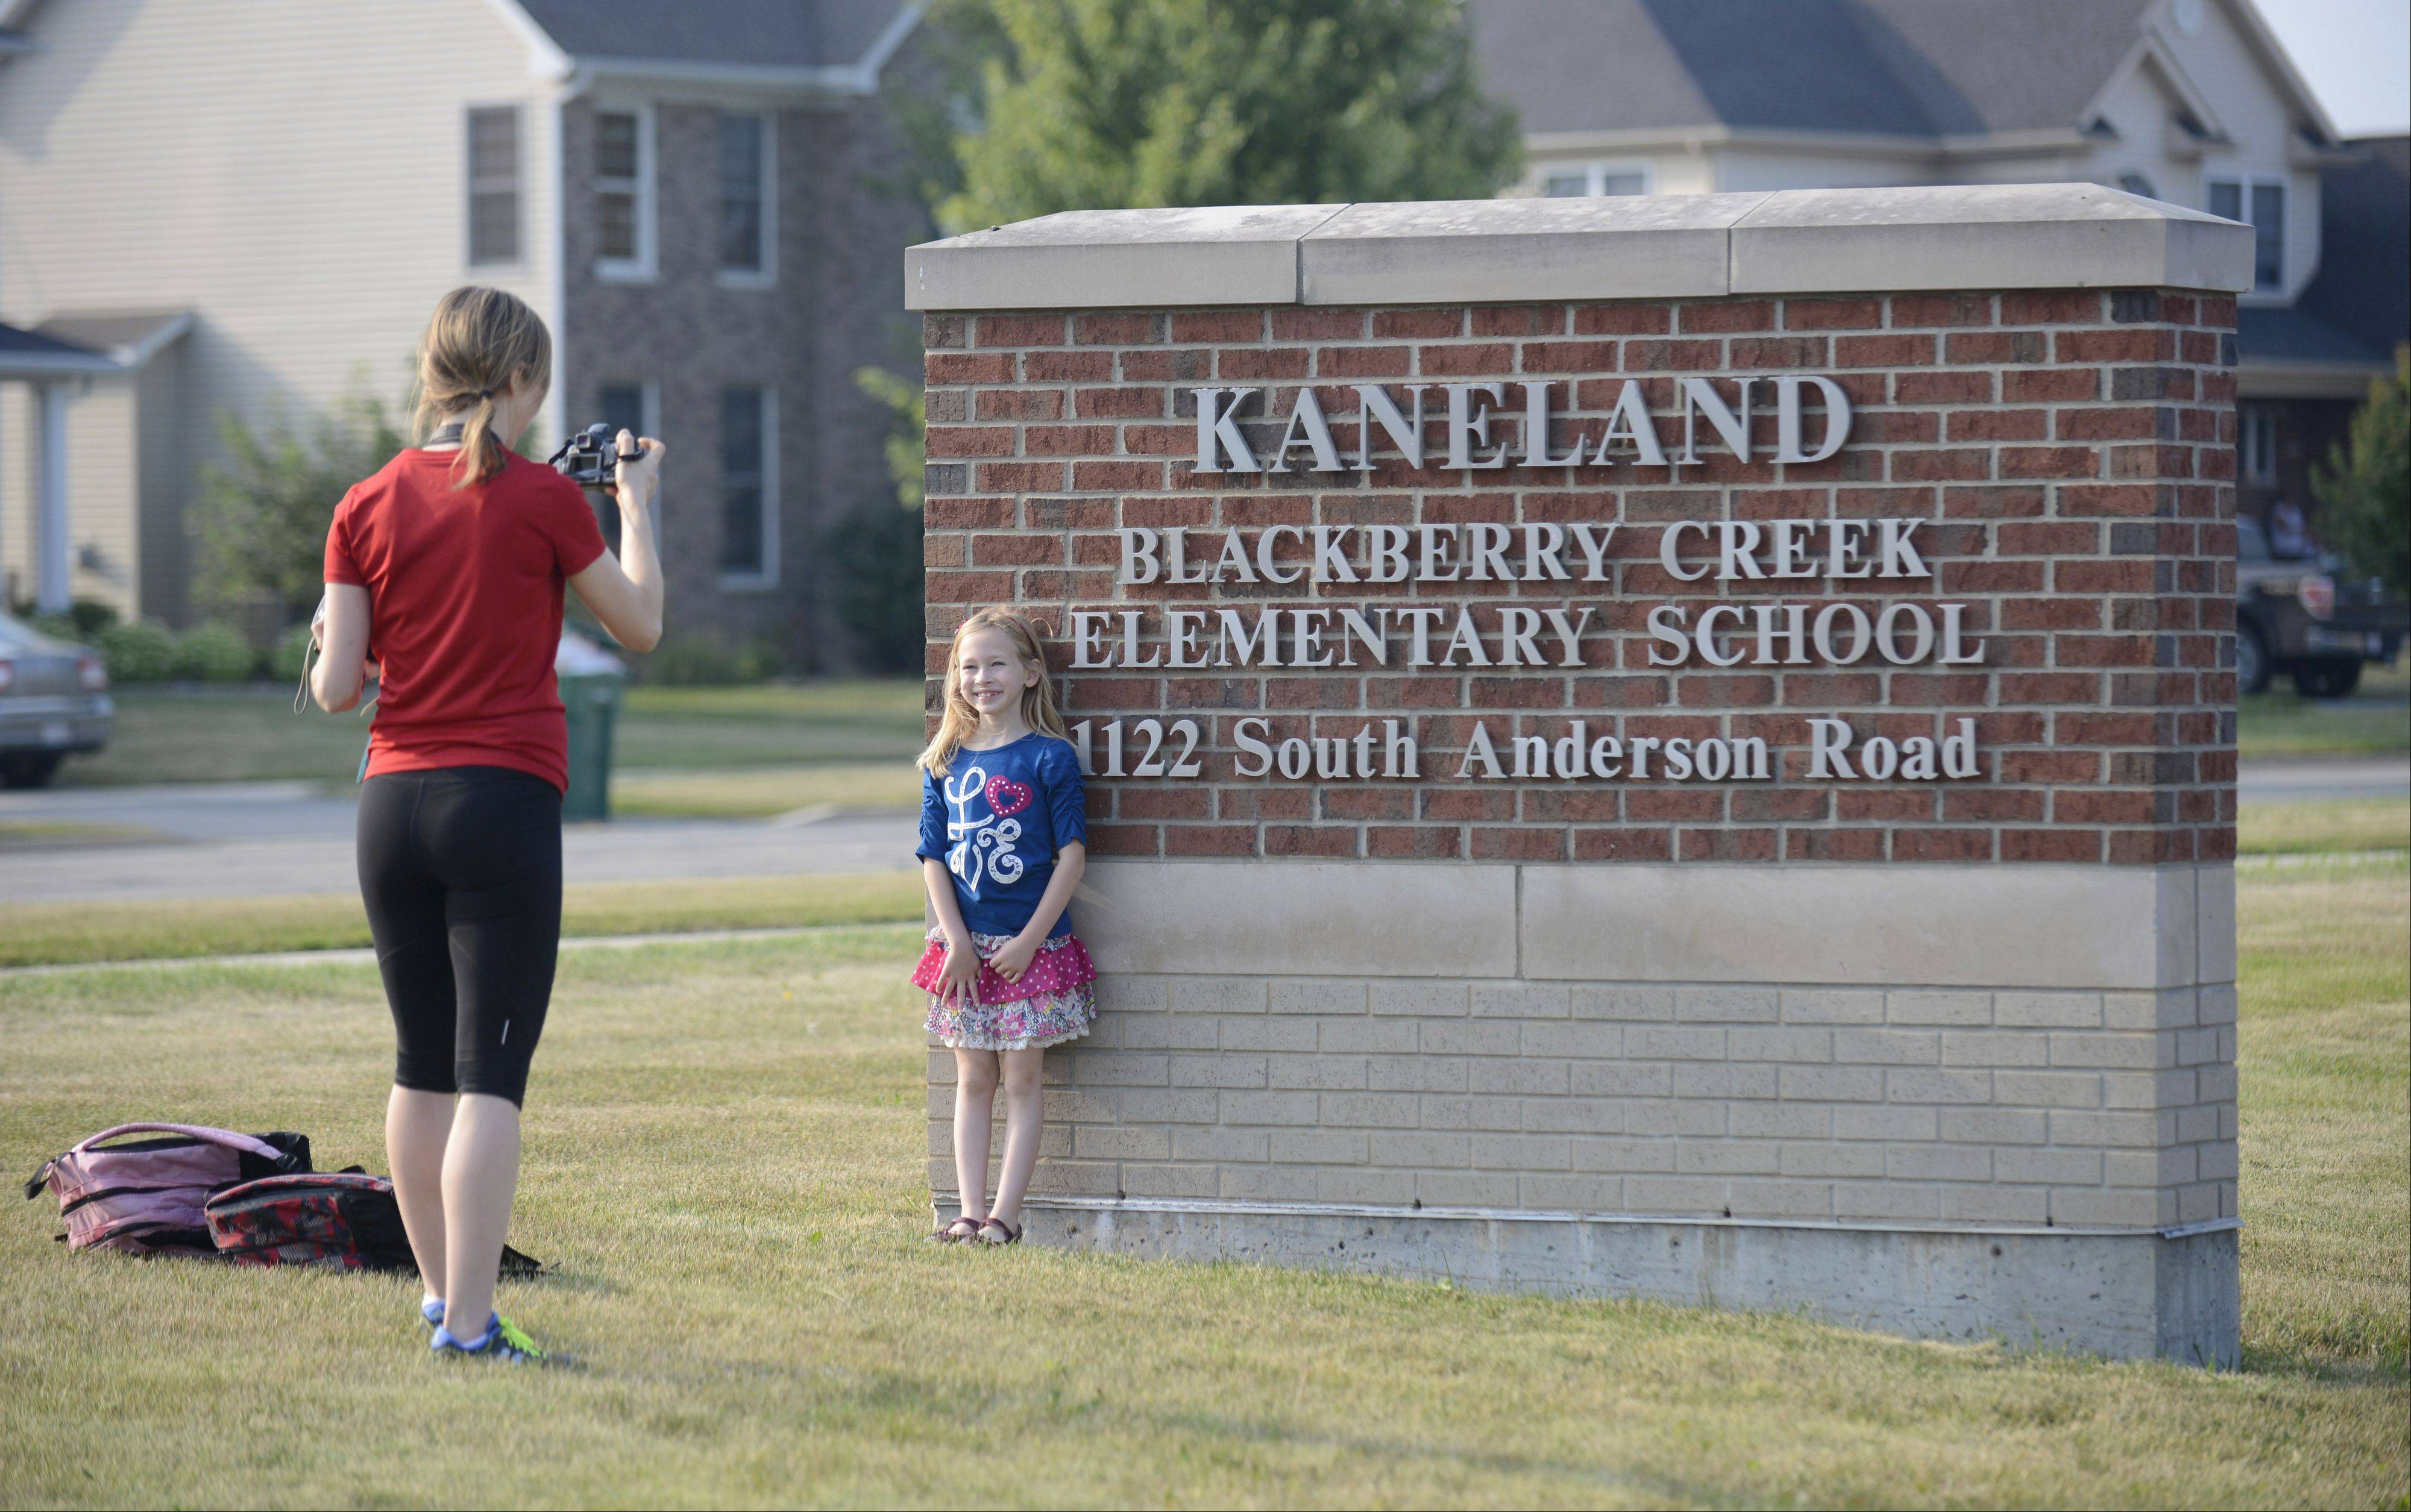 Laura Stoecker/lstoecker@dailyherald.comLaura Ryan takes a picture of her daughter, Alyssa, 8, as she and her younger brother, Ethan, 6, (hiding behind sign) take turns in front of the school sign for Kaneland Blackberry Creek Elementary School on the first day on Wednesday, August 21.